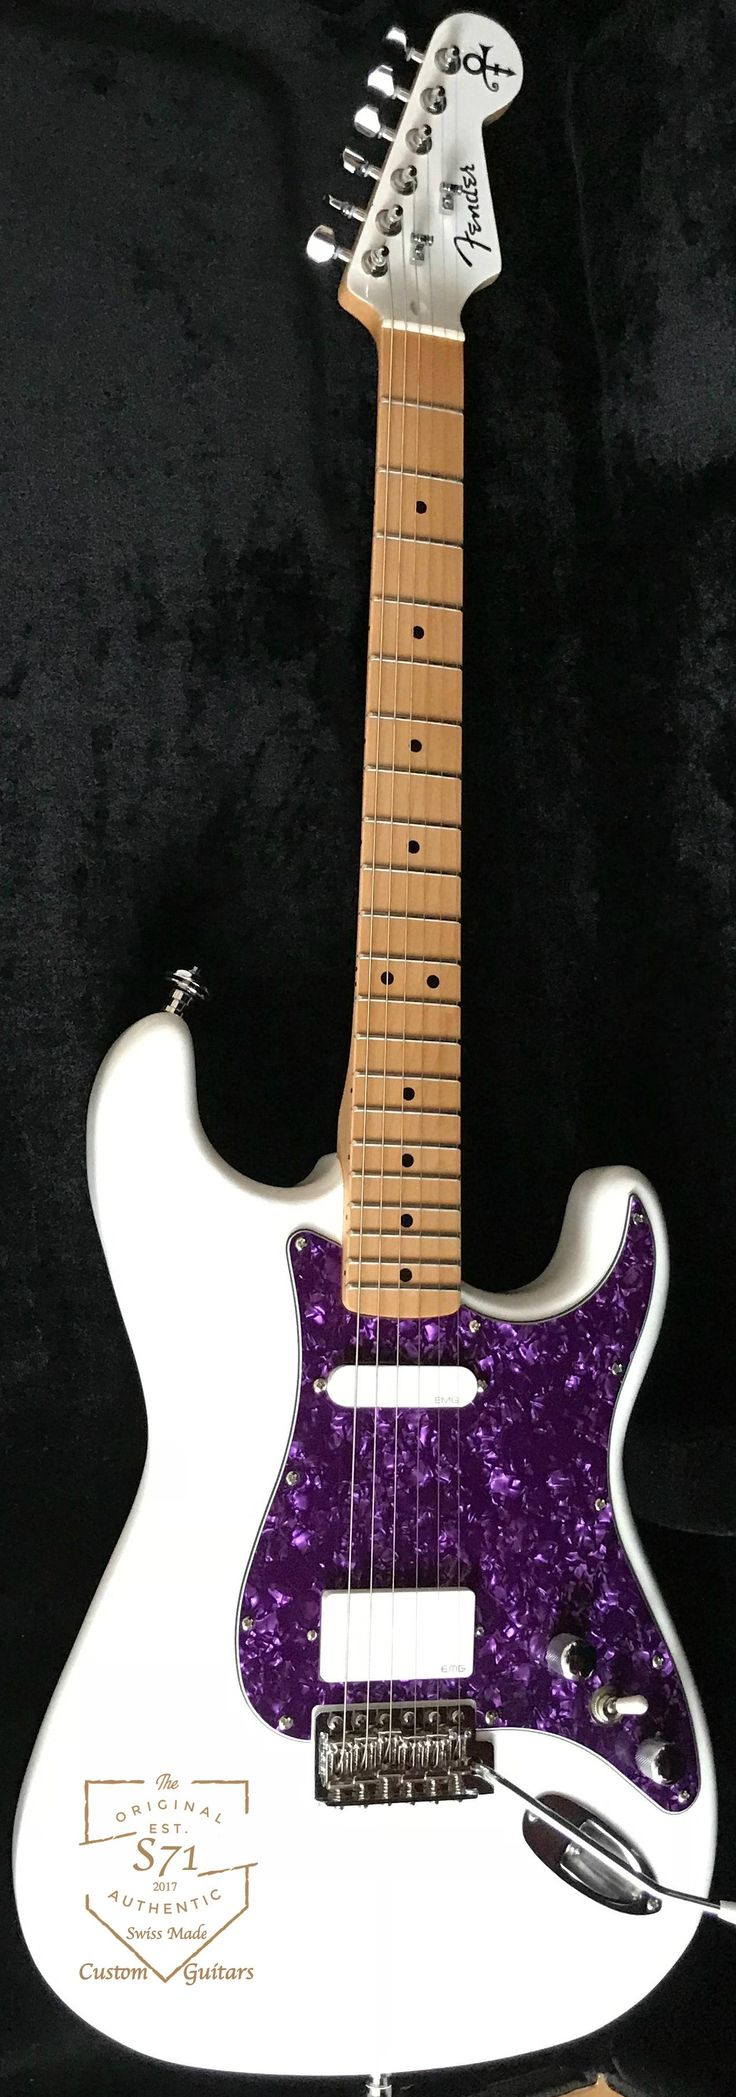 Prince Stratocaster, made on request by S71 Guitars. Custom order your dream guitar only from hjgh-end American or European Custom Shop/luthier parts for a very fair price. S71 Custom Shop Guitars.